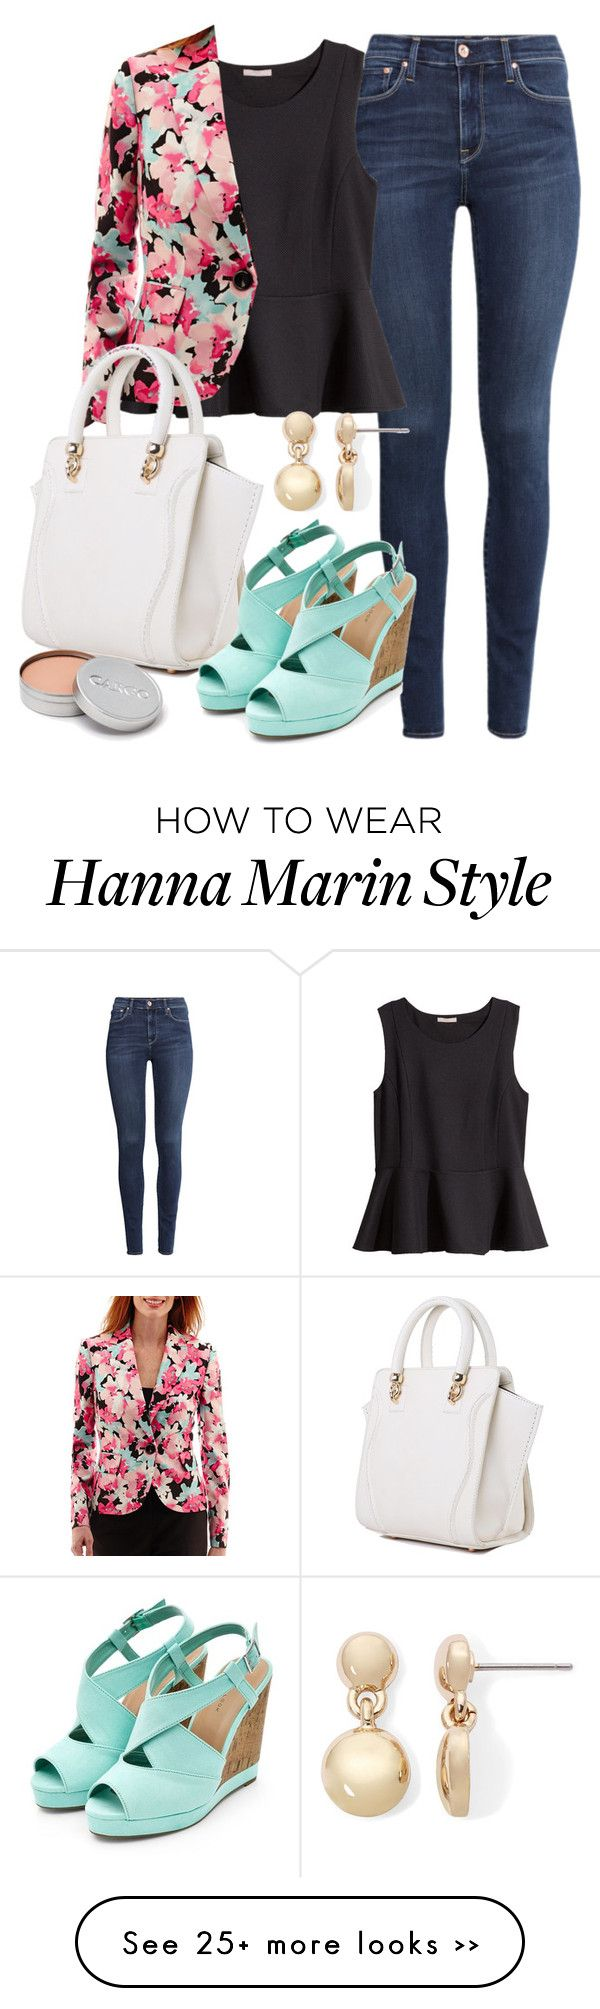 """Hanna Marin inspired outfit with jeans"" by liarsstyle on Polyvore"